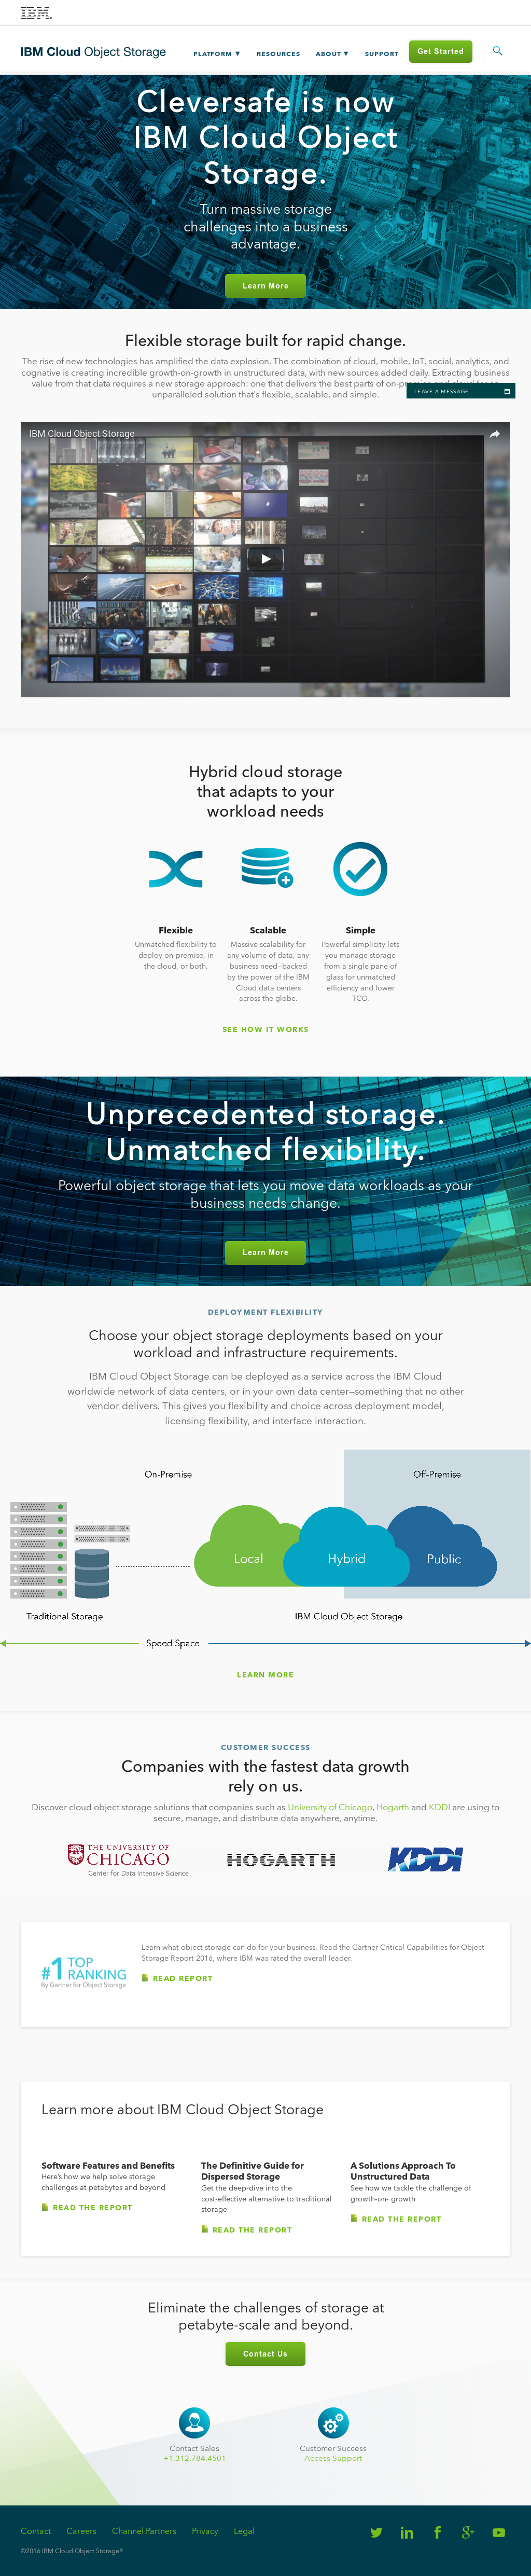 IBM Cloud Object Storage Competitors, Revenue and Employees